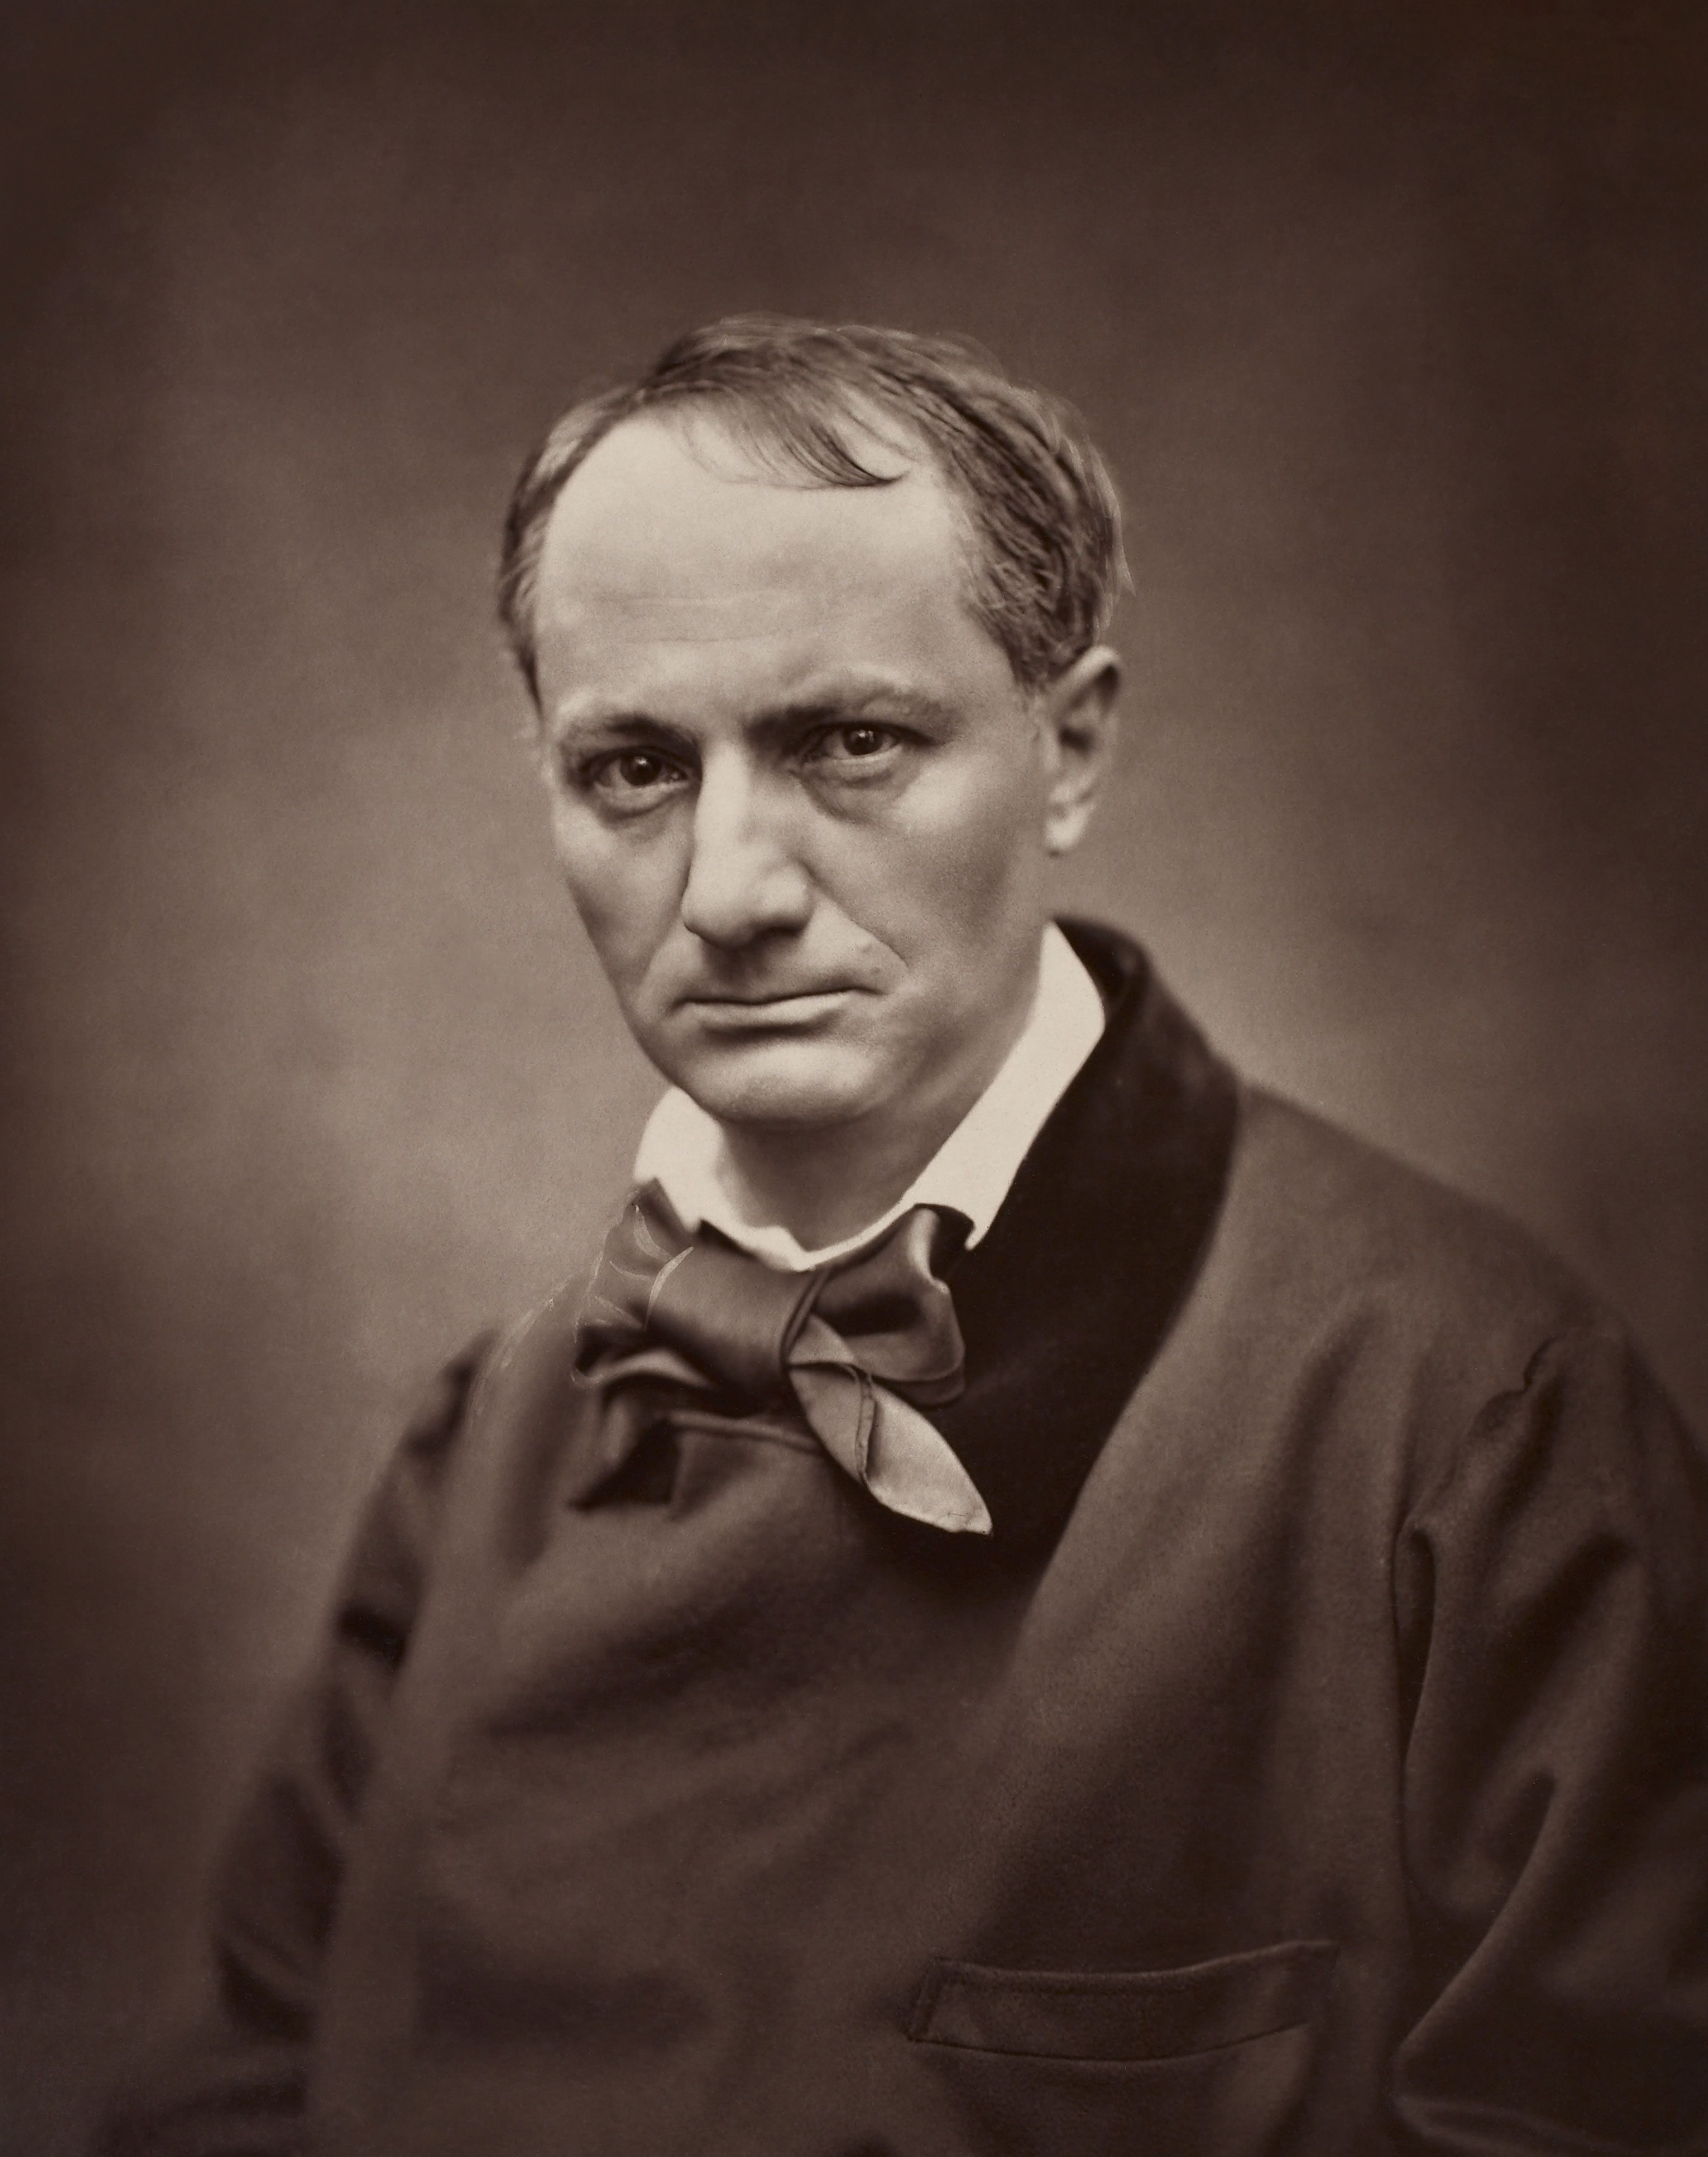 http://upload.wikimedia.org/wikipedia/commons/1/16/%C3%89tienne_Carjat%2C_Portrait_of_Charles_Baudelaire%2C_circa_1862.jpg